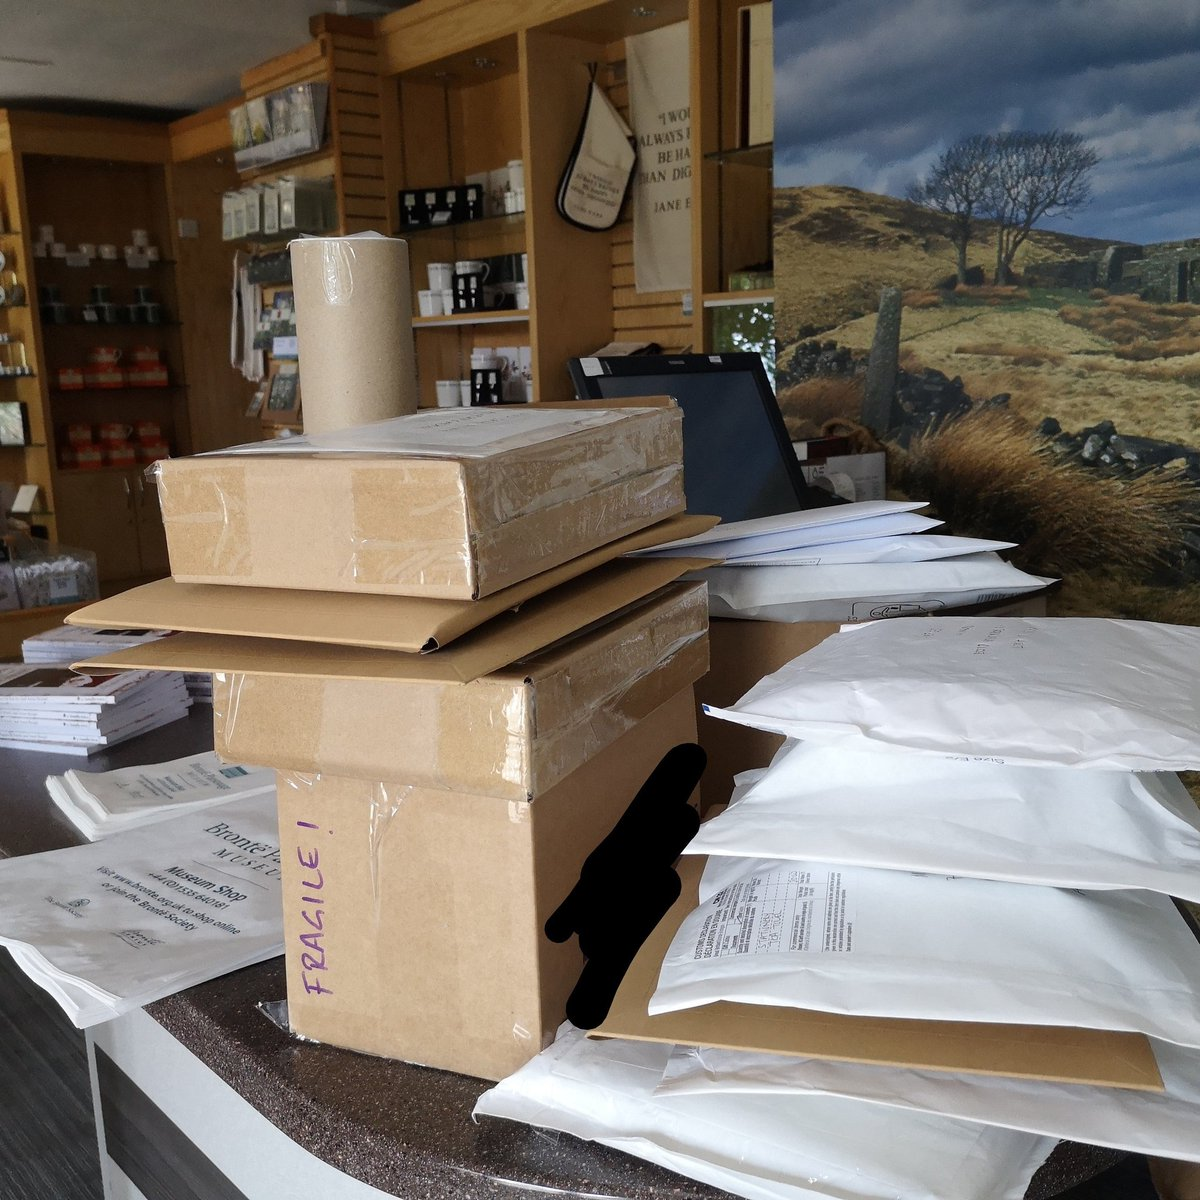 Thank you #Bronte shoppers! More online shop orders heading across the world today... Germany, Australia, Colerado, Iowa, Spain, Canada and across the UK. Have you visited http://www.bronte.org.uk/bronte-shop yet?pic.twitter.com/ZEgw3MsnOE